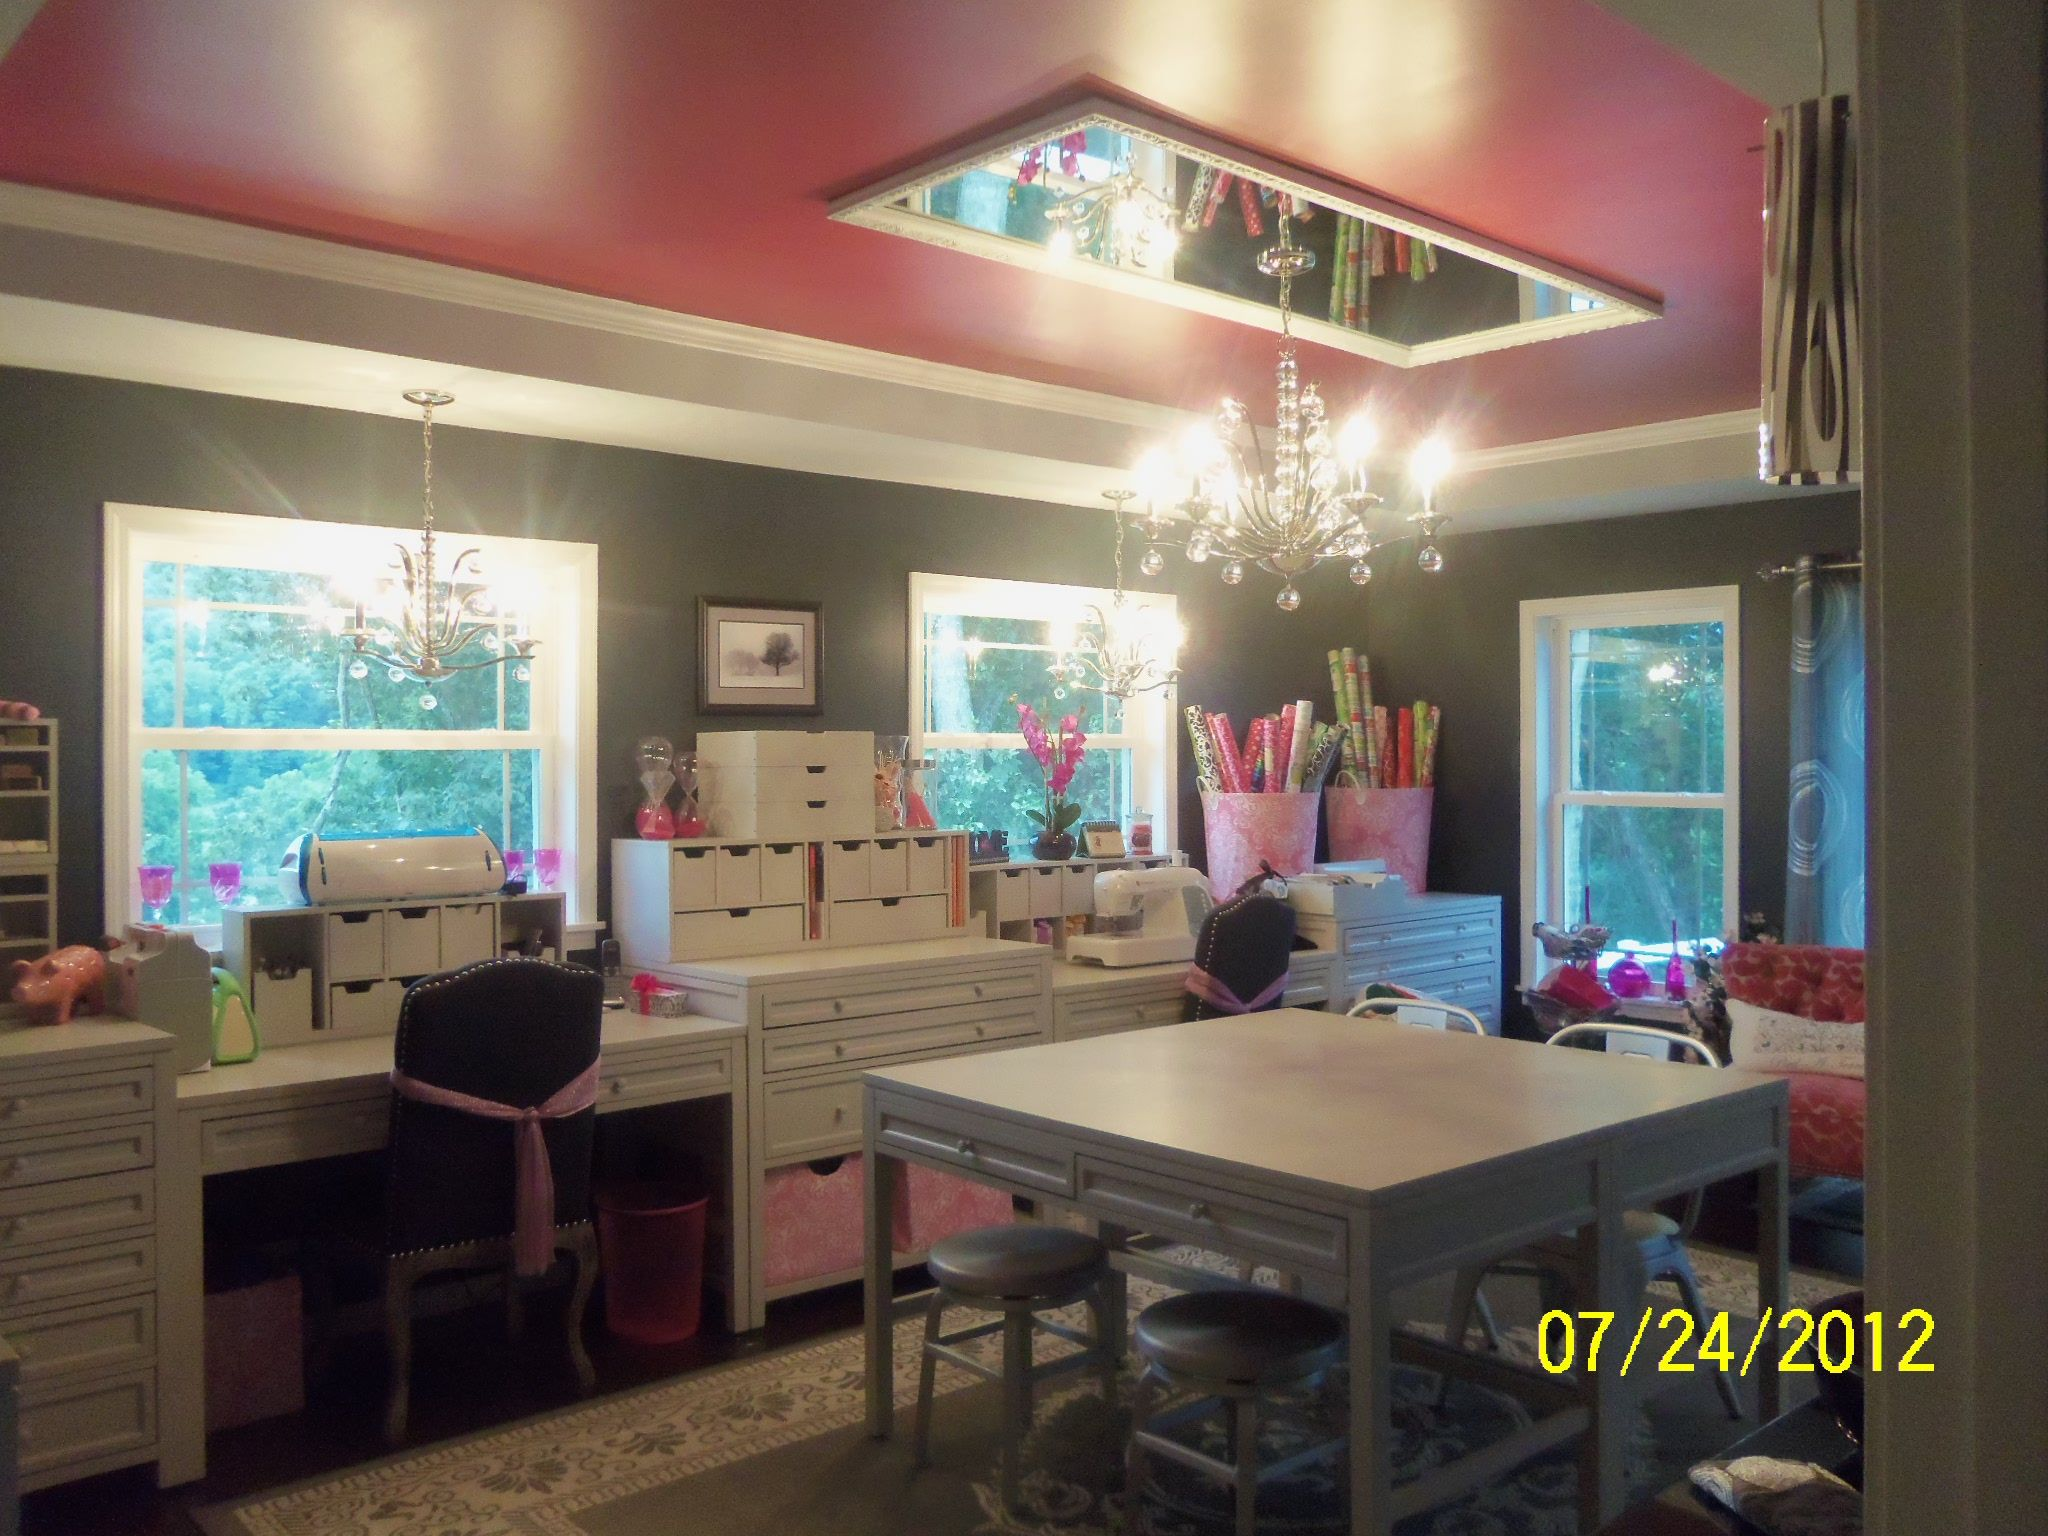 Sewing Room Storage Cabinets Someones Craft Room Mirror Over Light Fixture Could Be Cool With